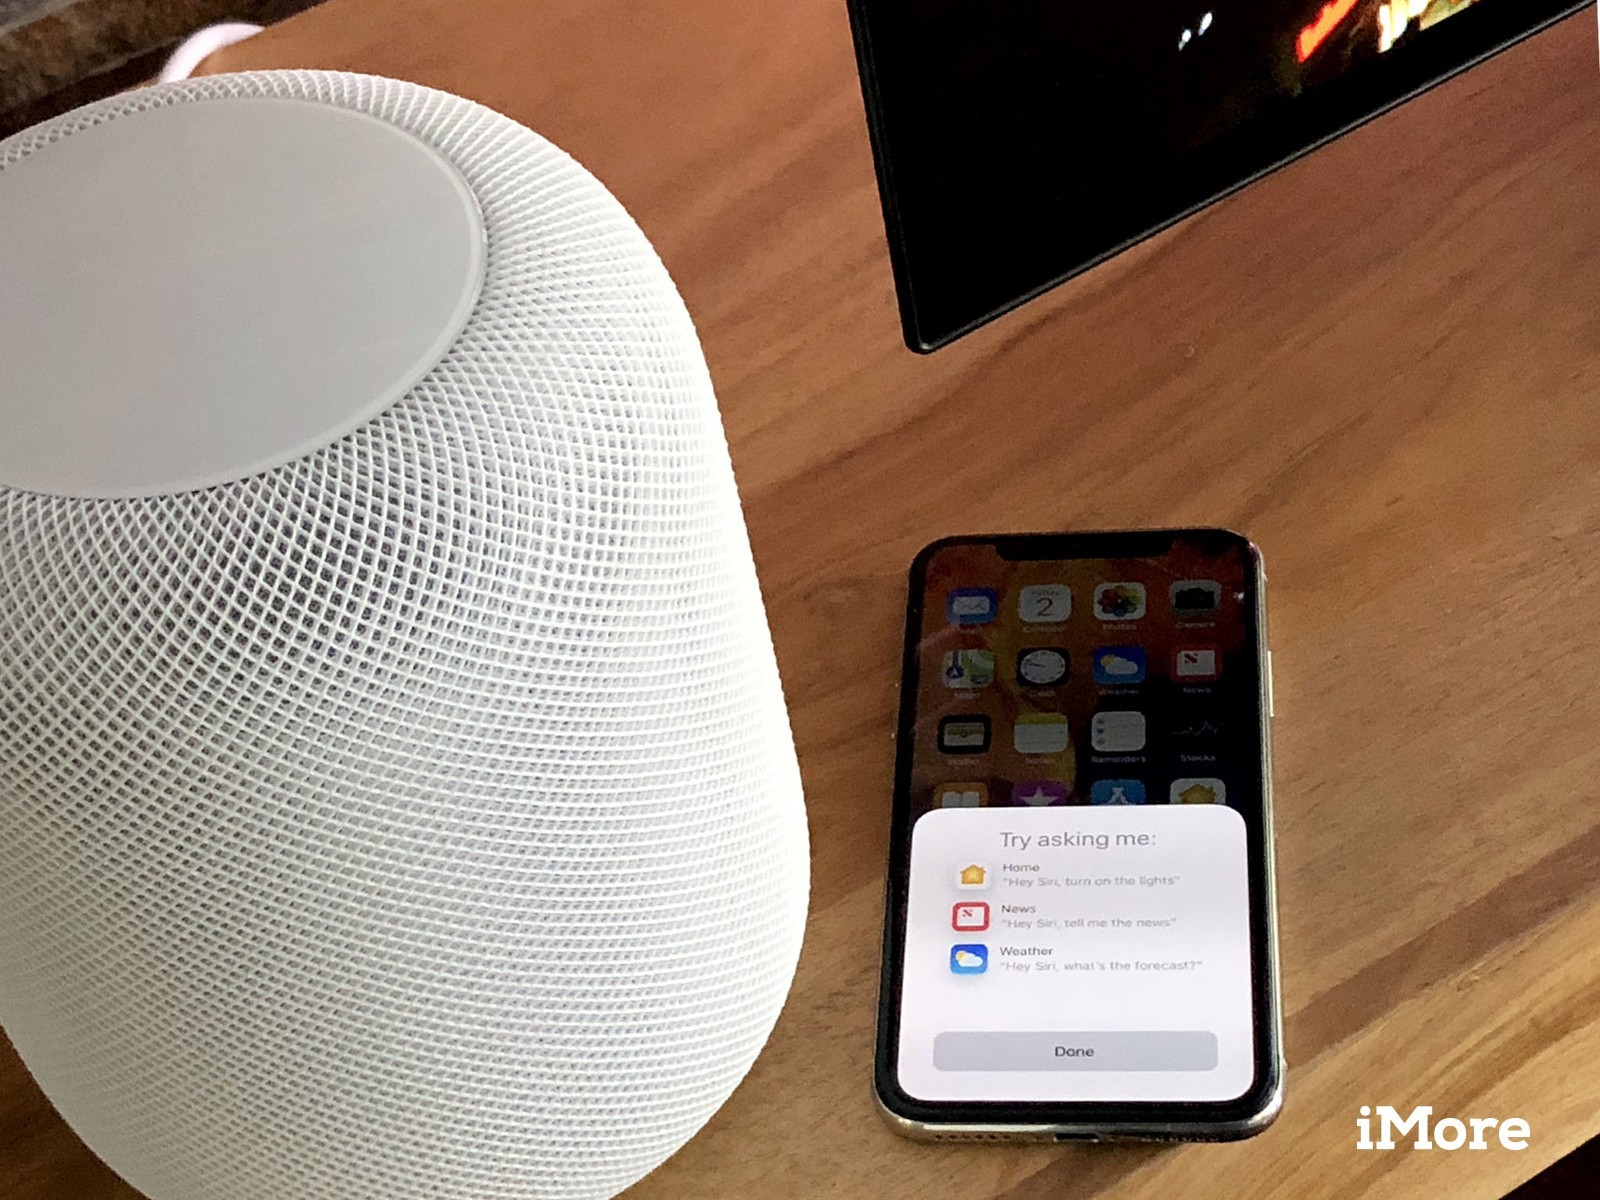 Wallpaper Dinding Minimalis Terbaik Untuk Homepod Review Retina for Your Ears Of Wallpaper Dinding Minimalis Paling Baik Untuk Minimalist Wallpaper Wallpapersafari